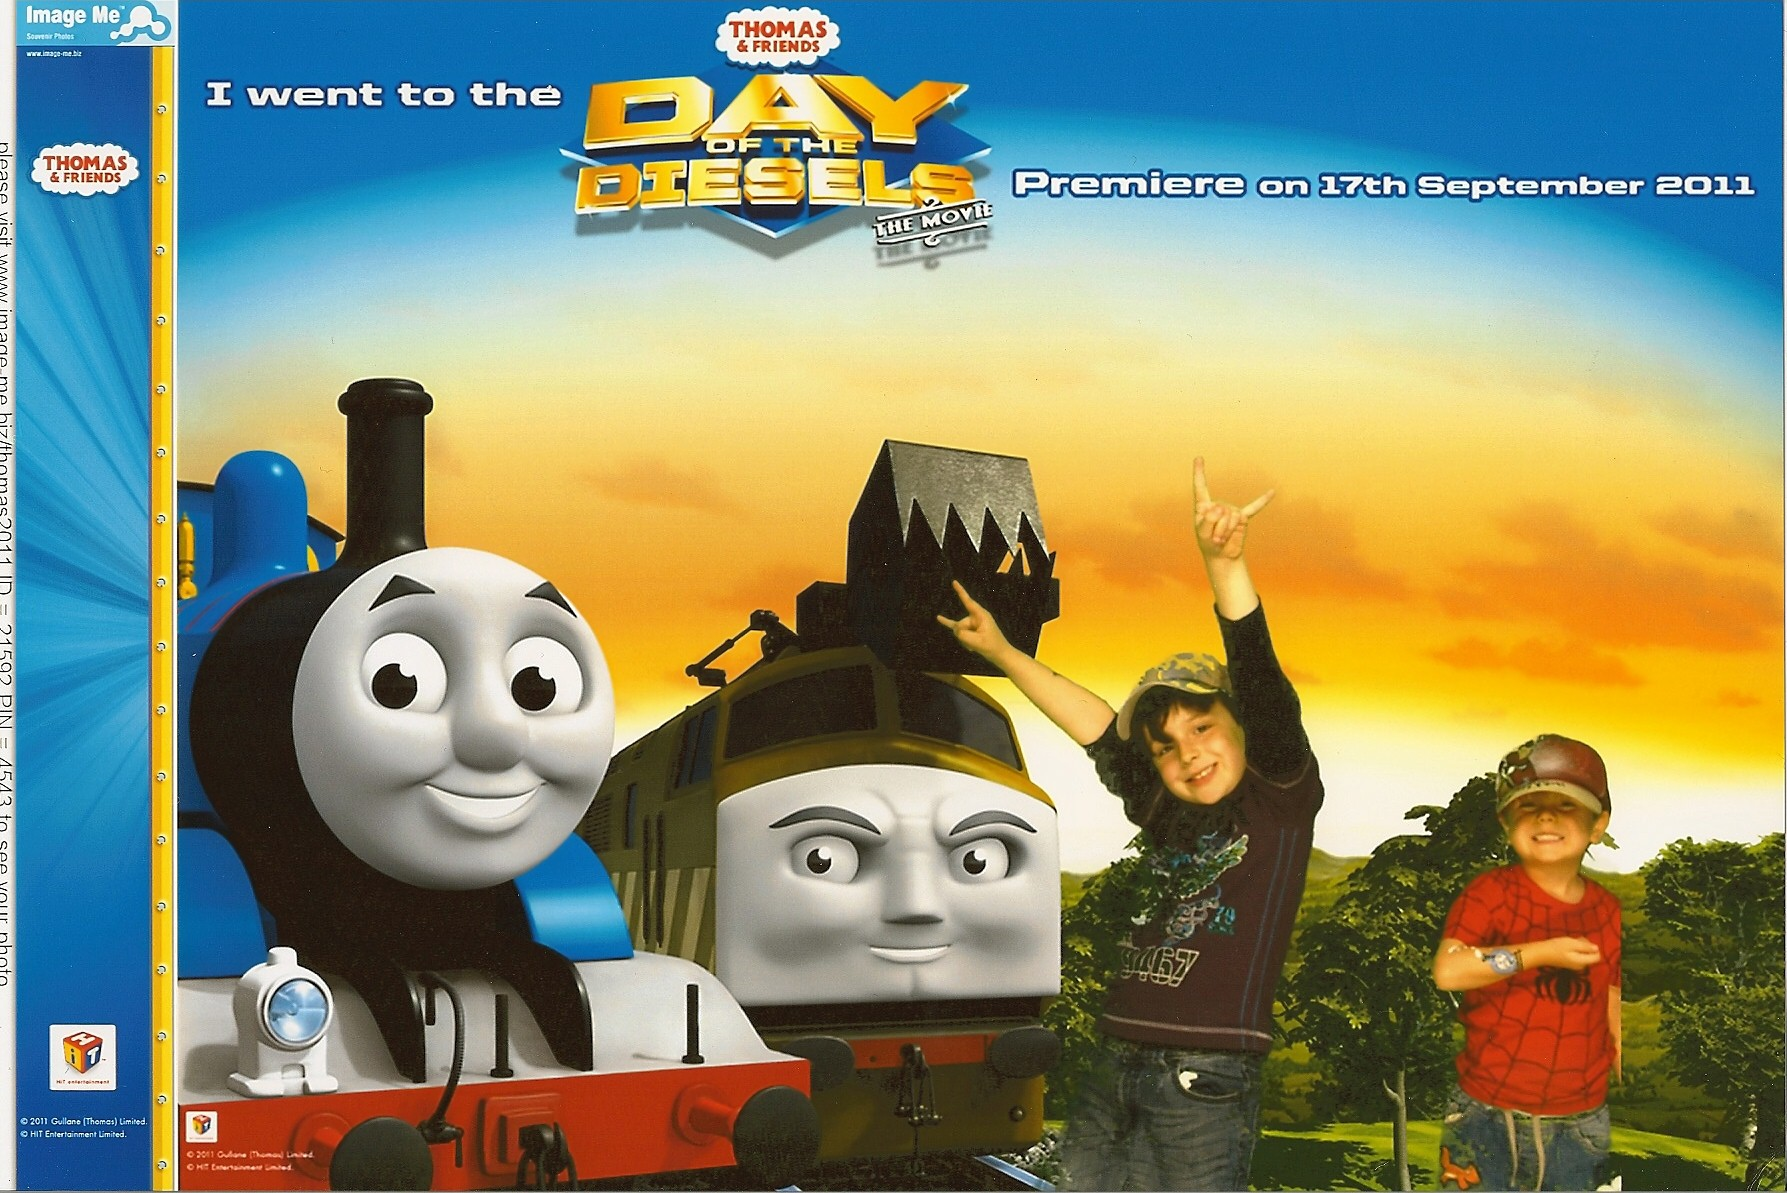 Thomas And Friends Day Of The Diesels The Movie Premiere